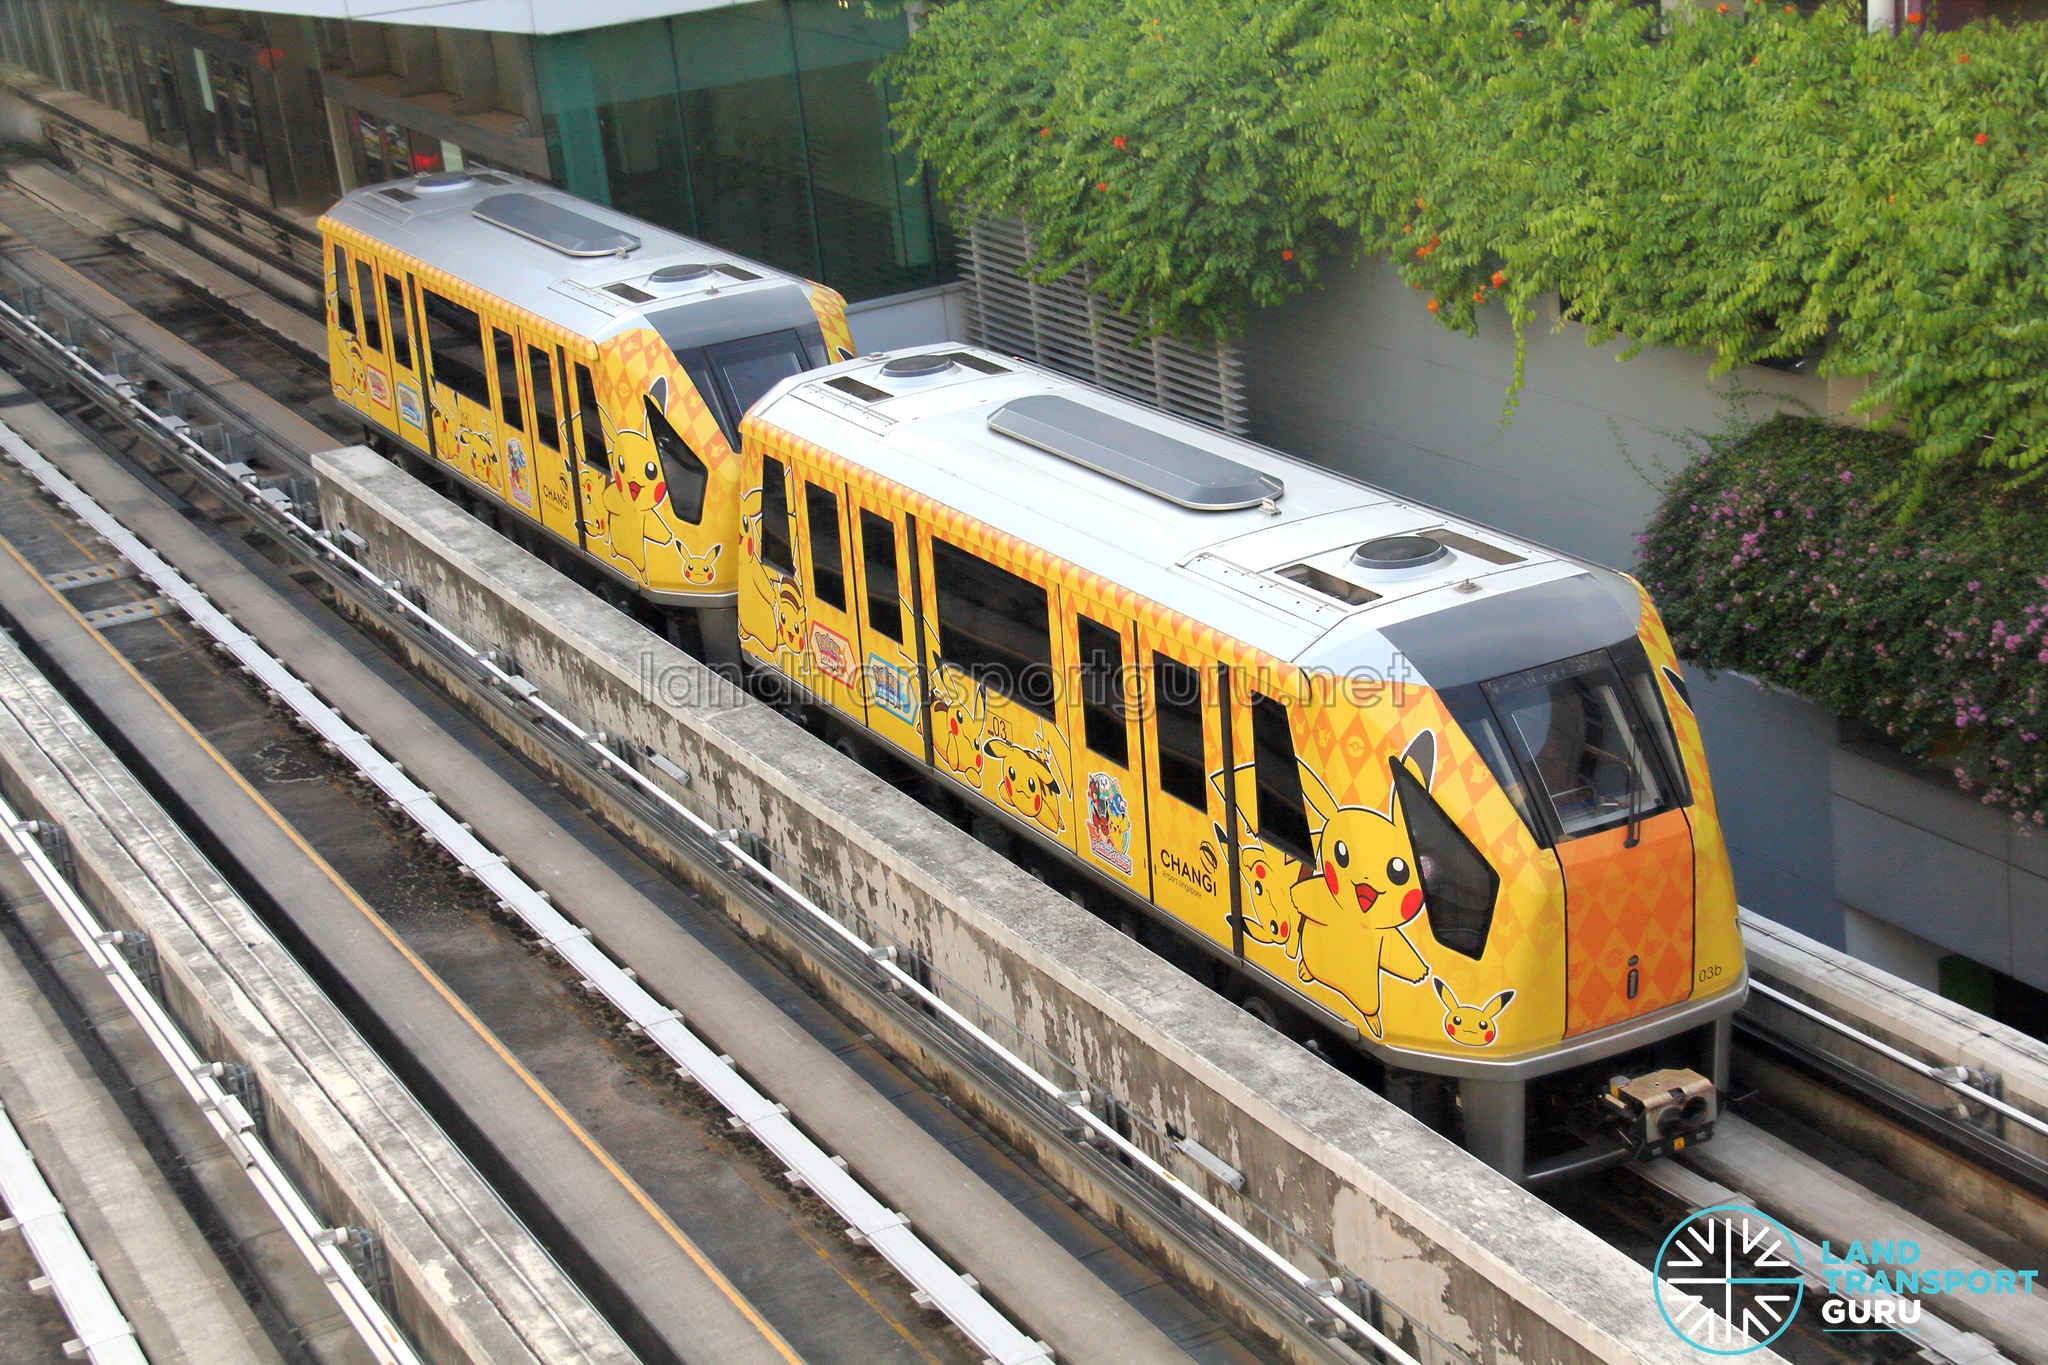 Changi Airport Skytrain (Double-car) in a Pokemon-themed livery